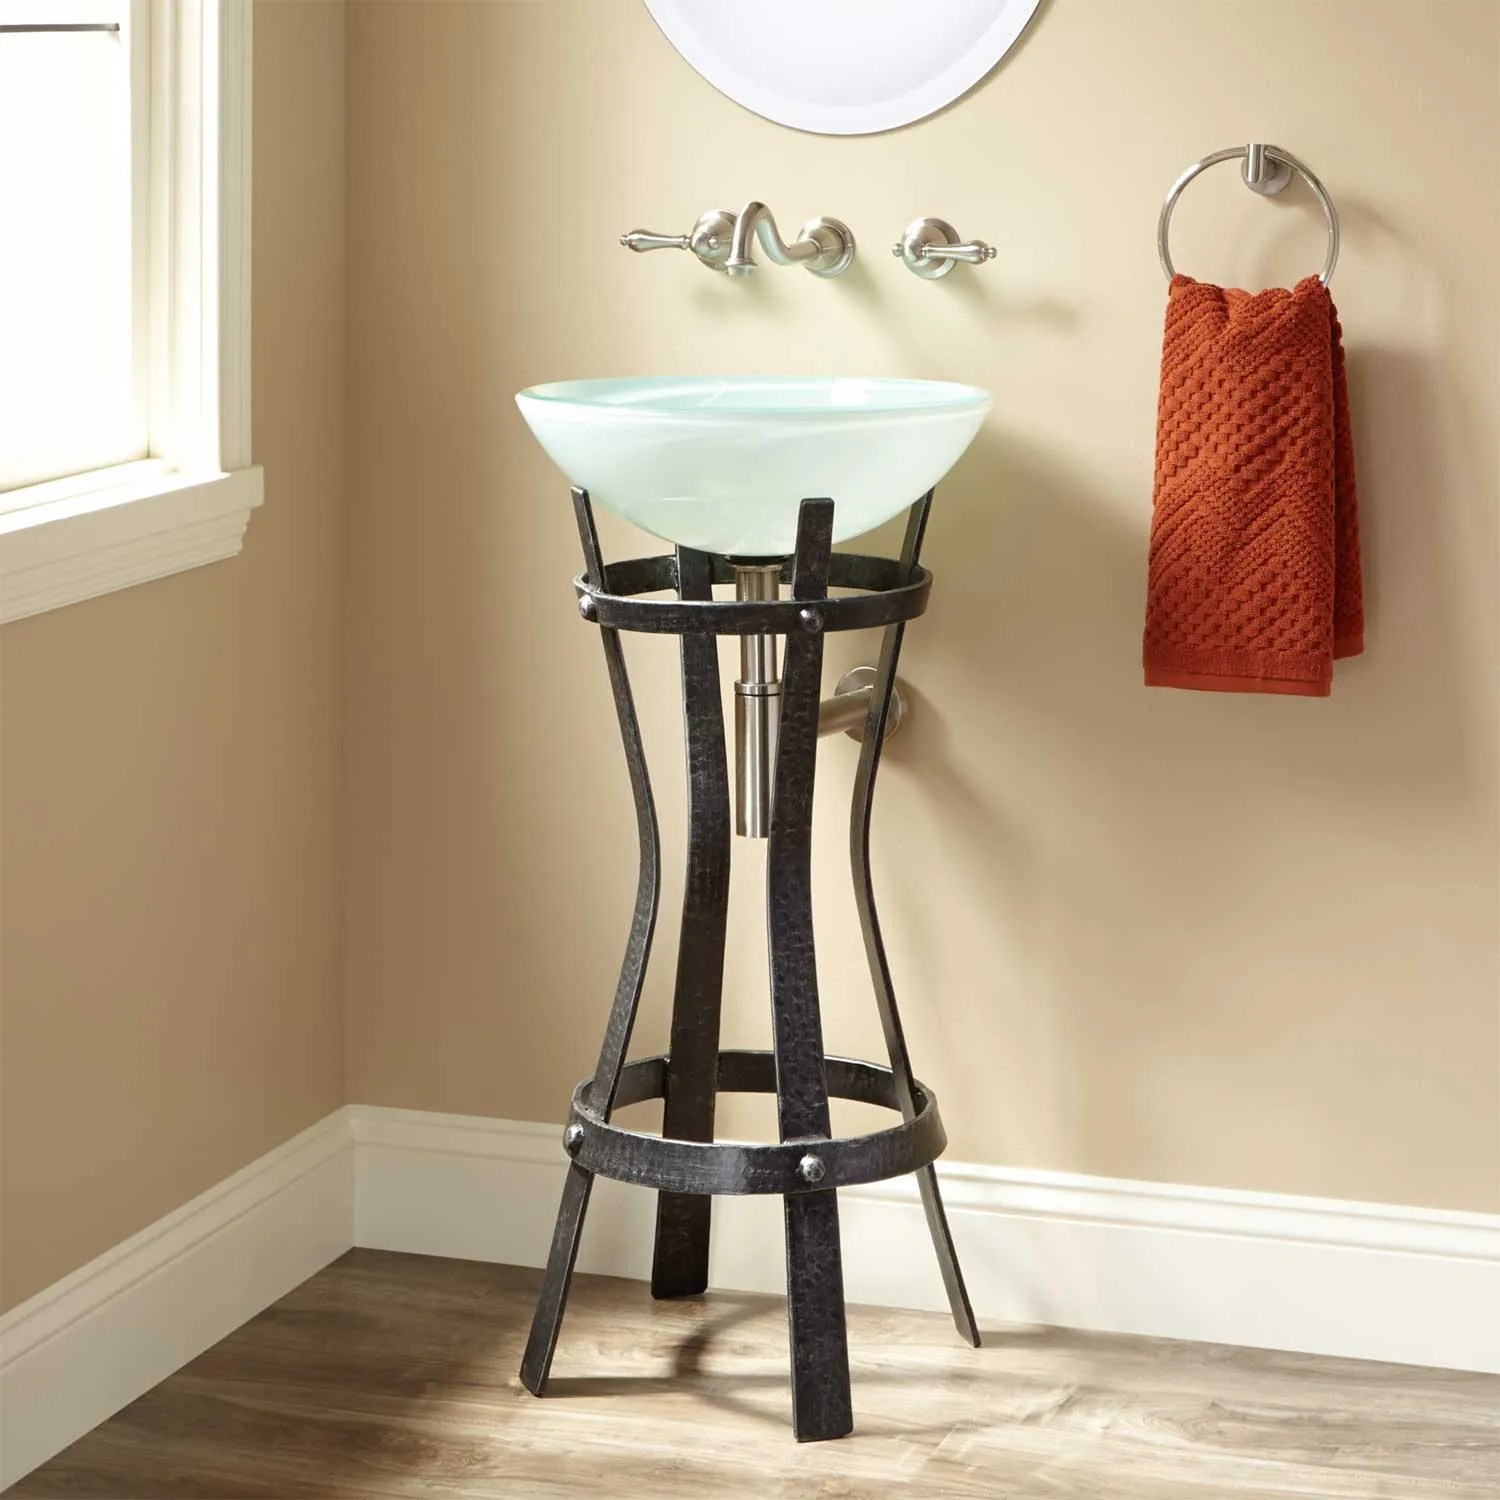 Rouleau Wrought Iron Vessel Sink Stand  Bathroom